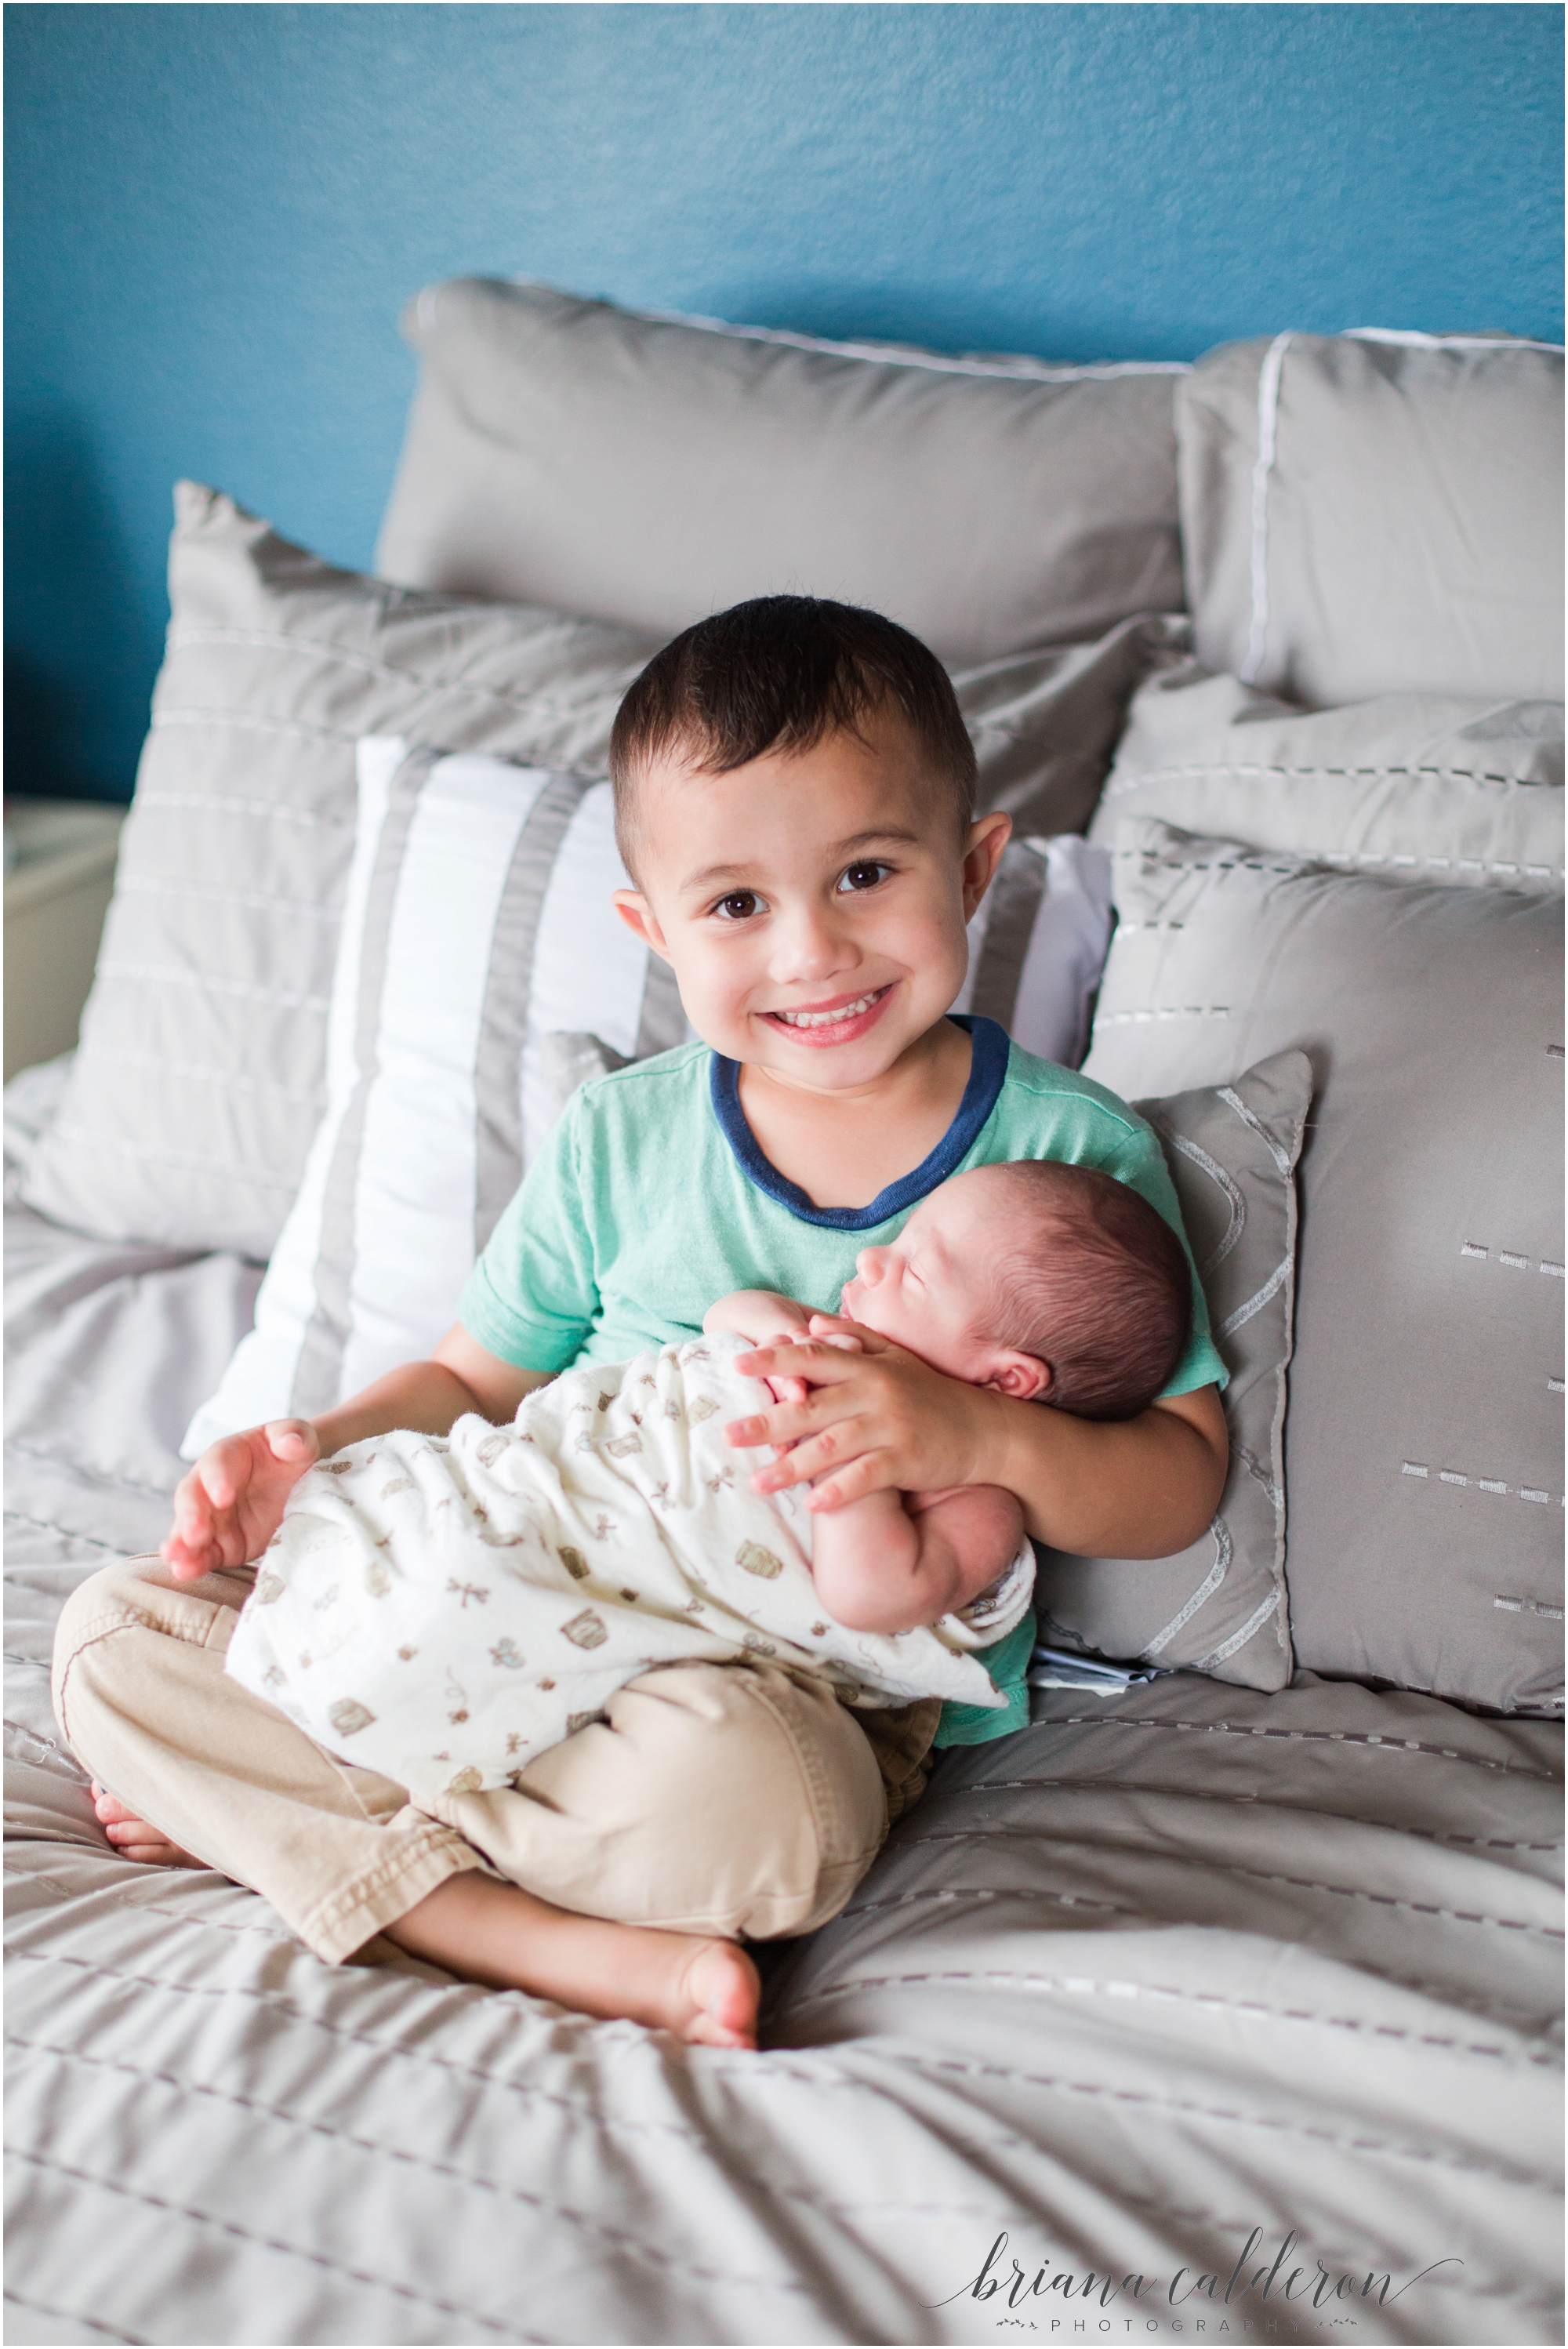 Bay Area lifestyle newbornpictures by Briana Calderon Photography_1389.jpg